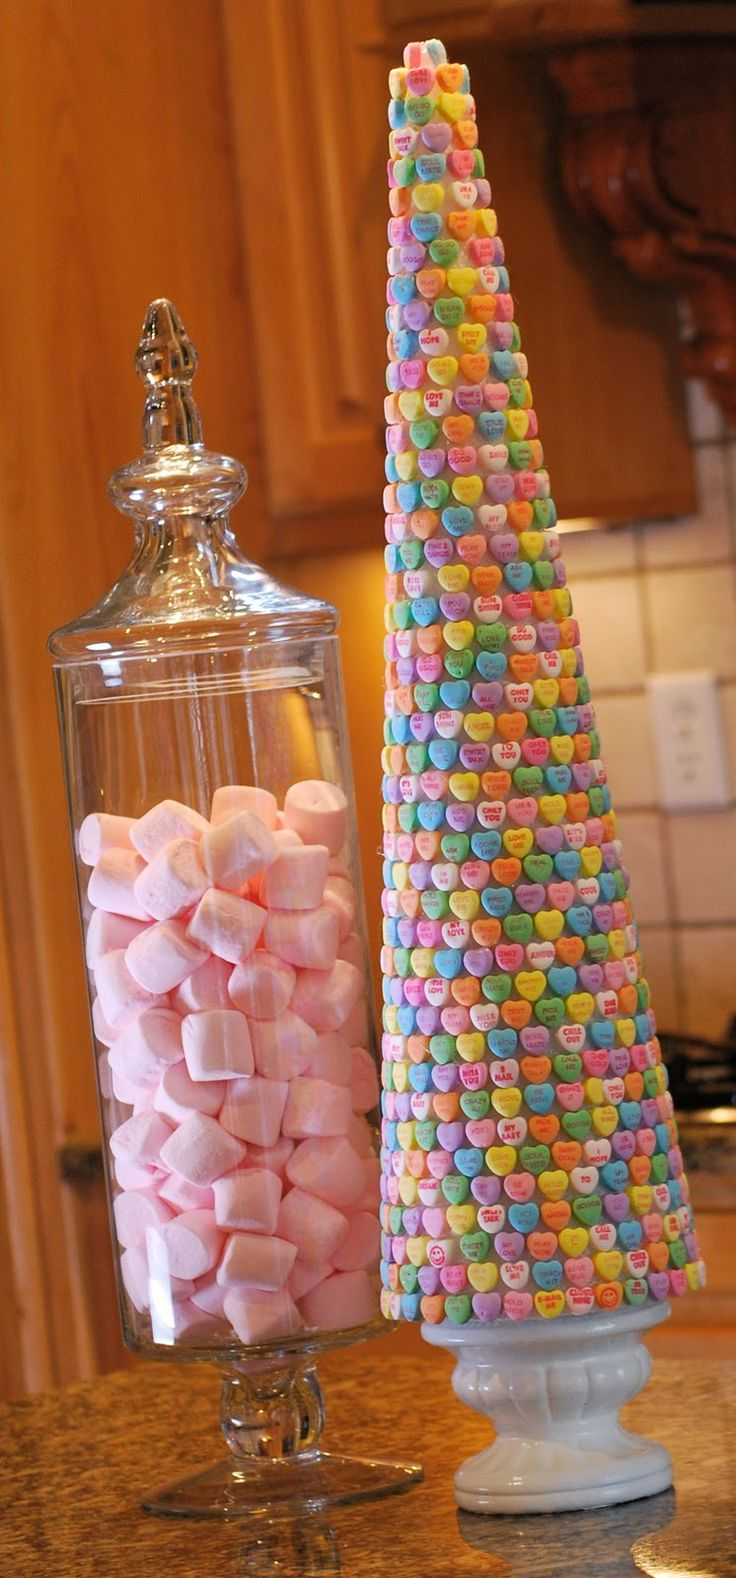 Sweet idea!  Conversation Hearts Topiary Trees.  Looks like the base could be a candle holder